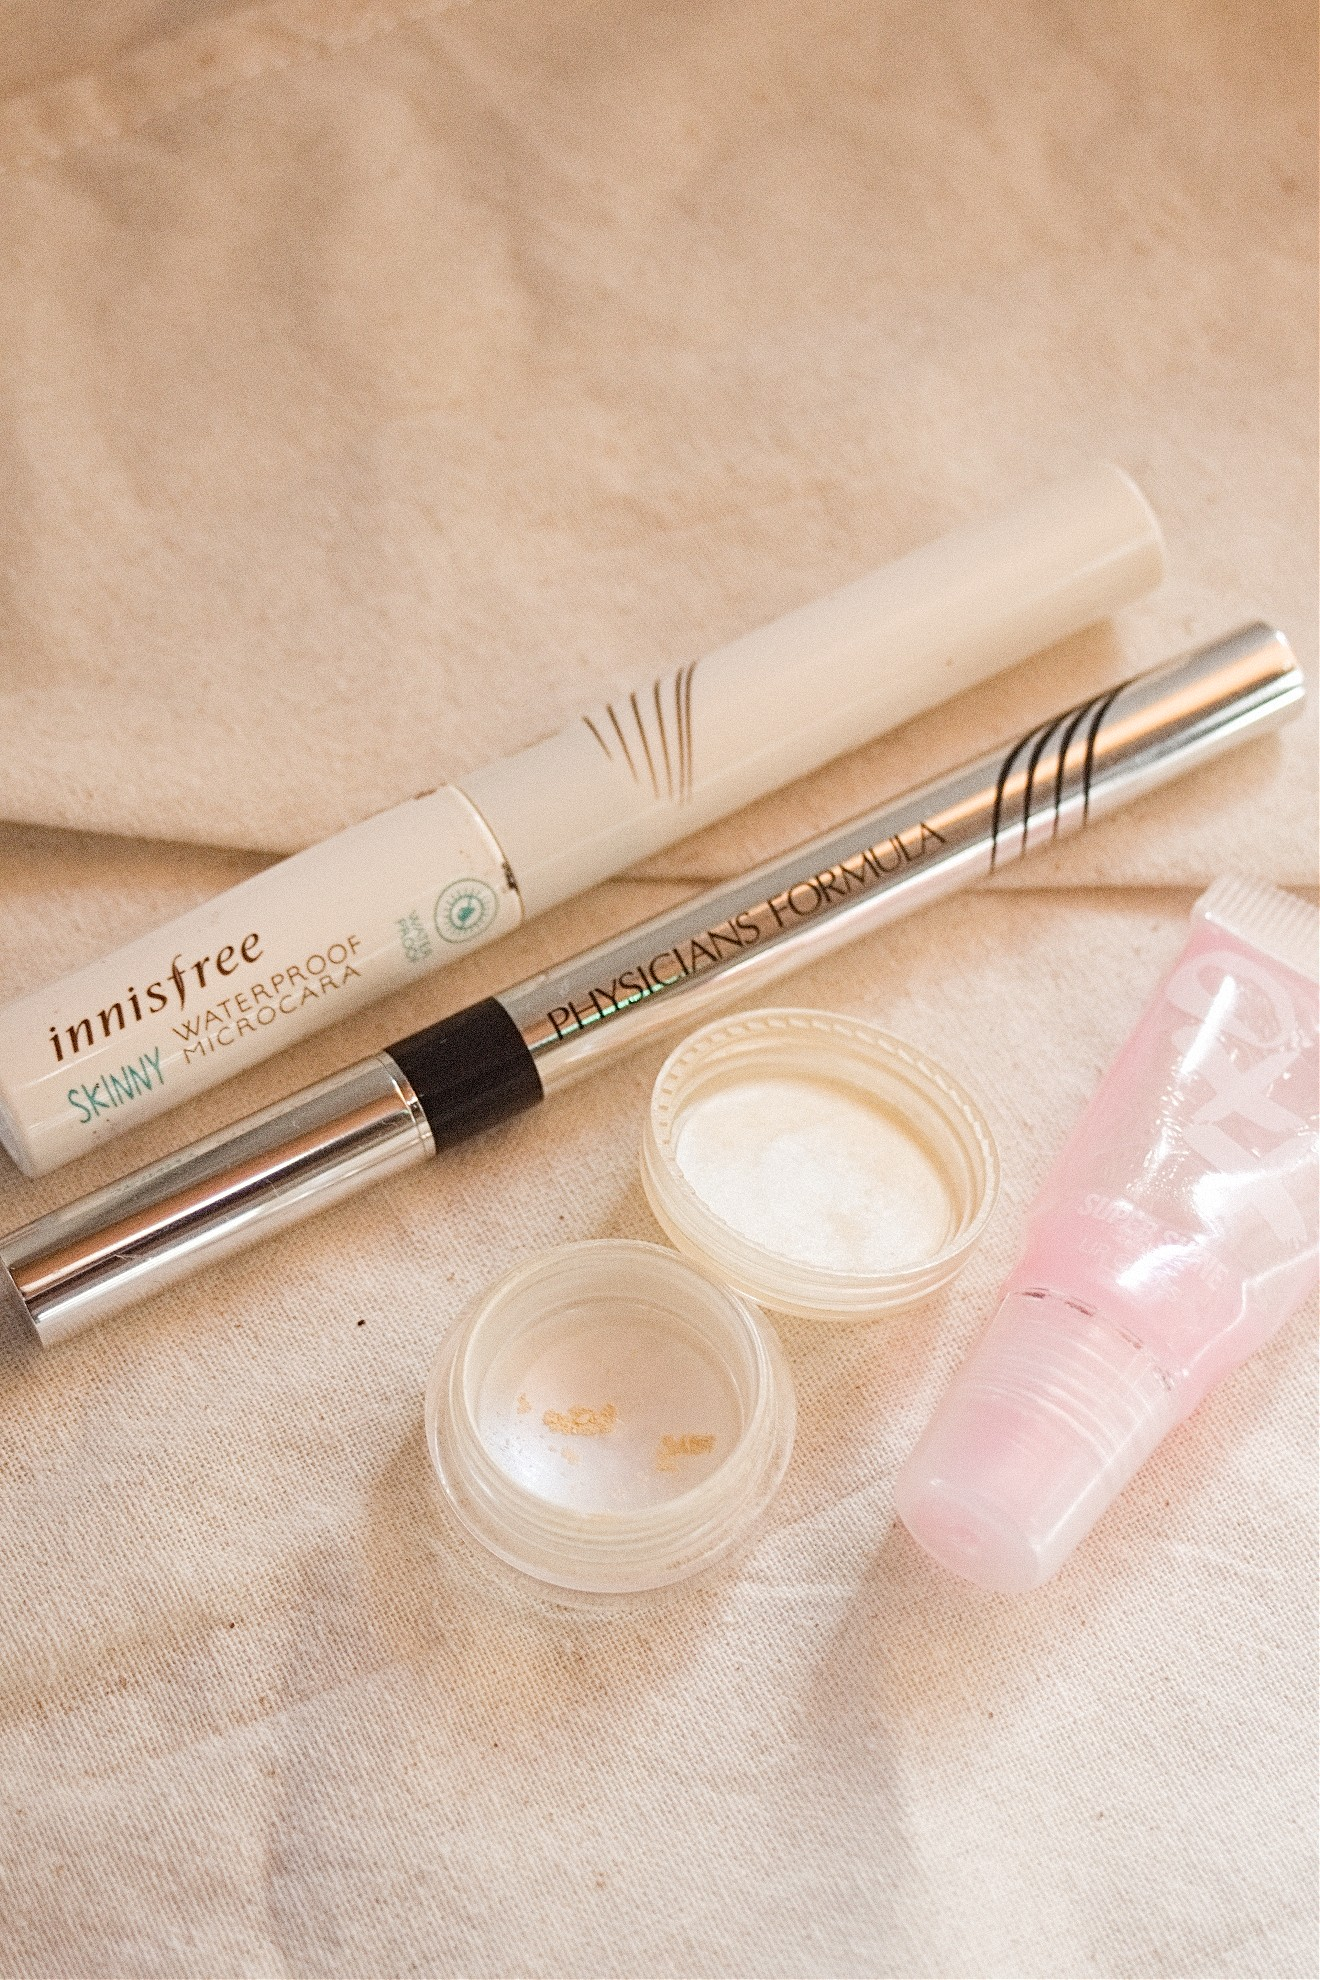 makeup beauty product review empties